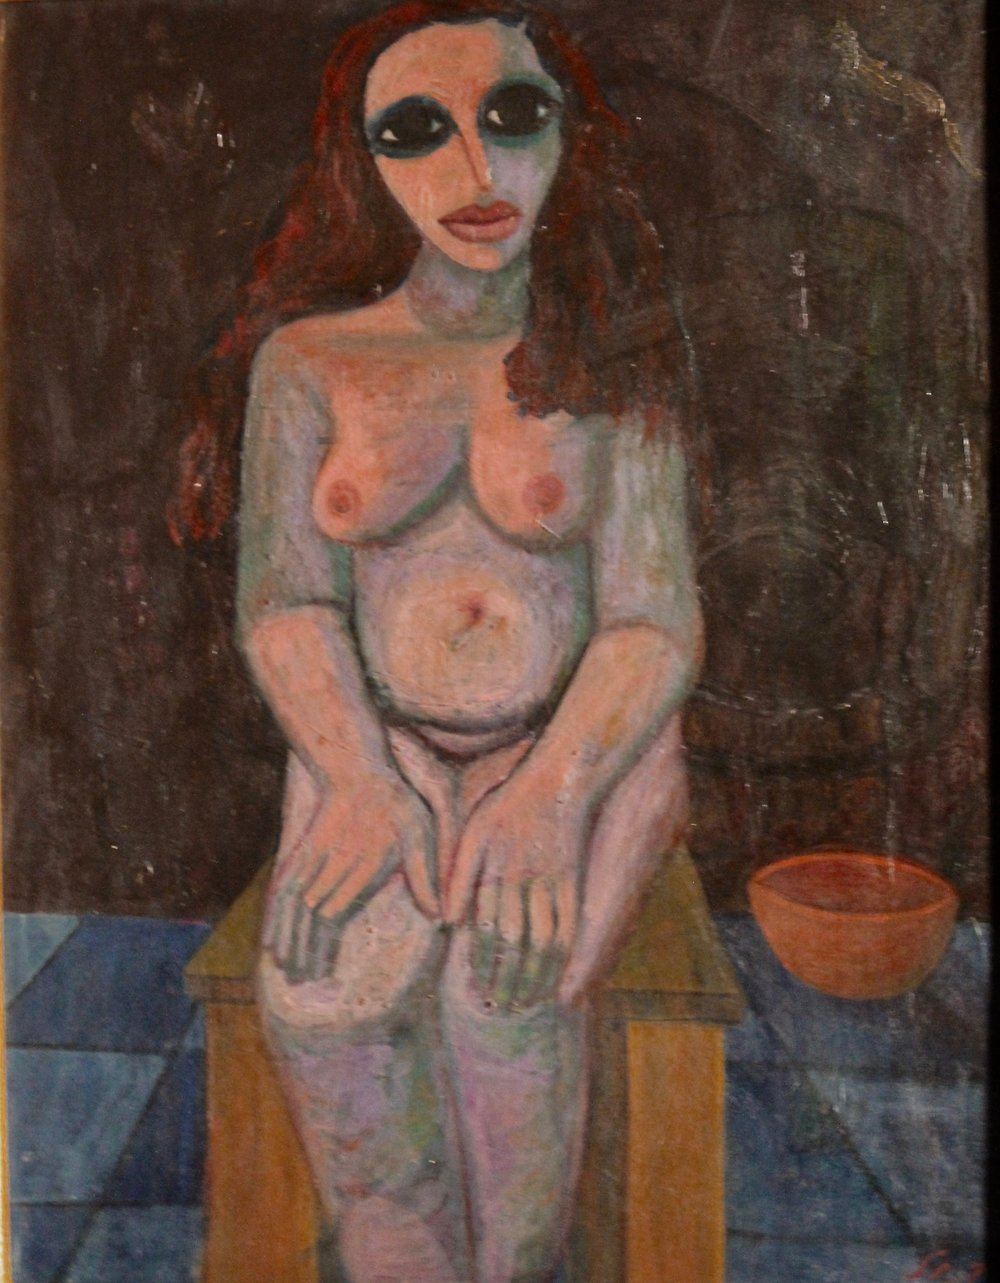 Ahmed-Morsi-Untitled-(Seated-Nude)-1959.jpg